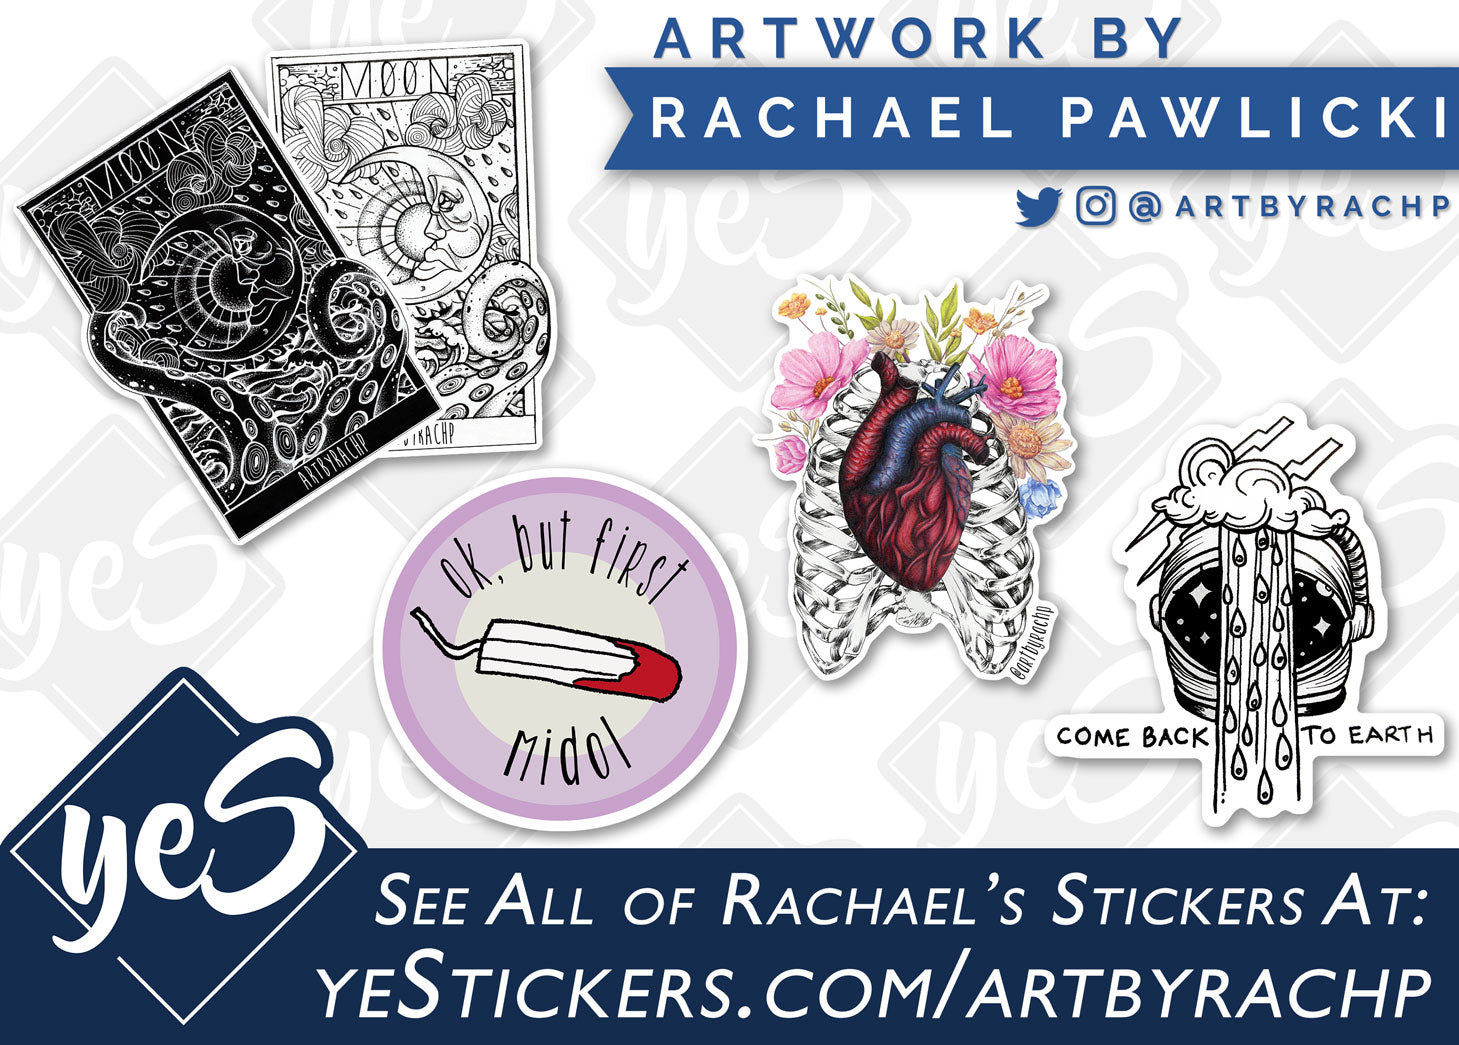 Stickers by Rachael Pawlicki at yeStickers.com